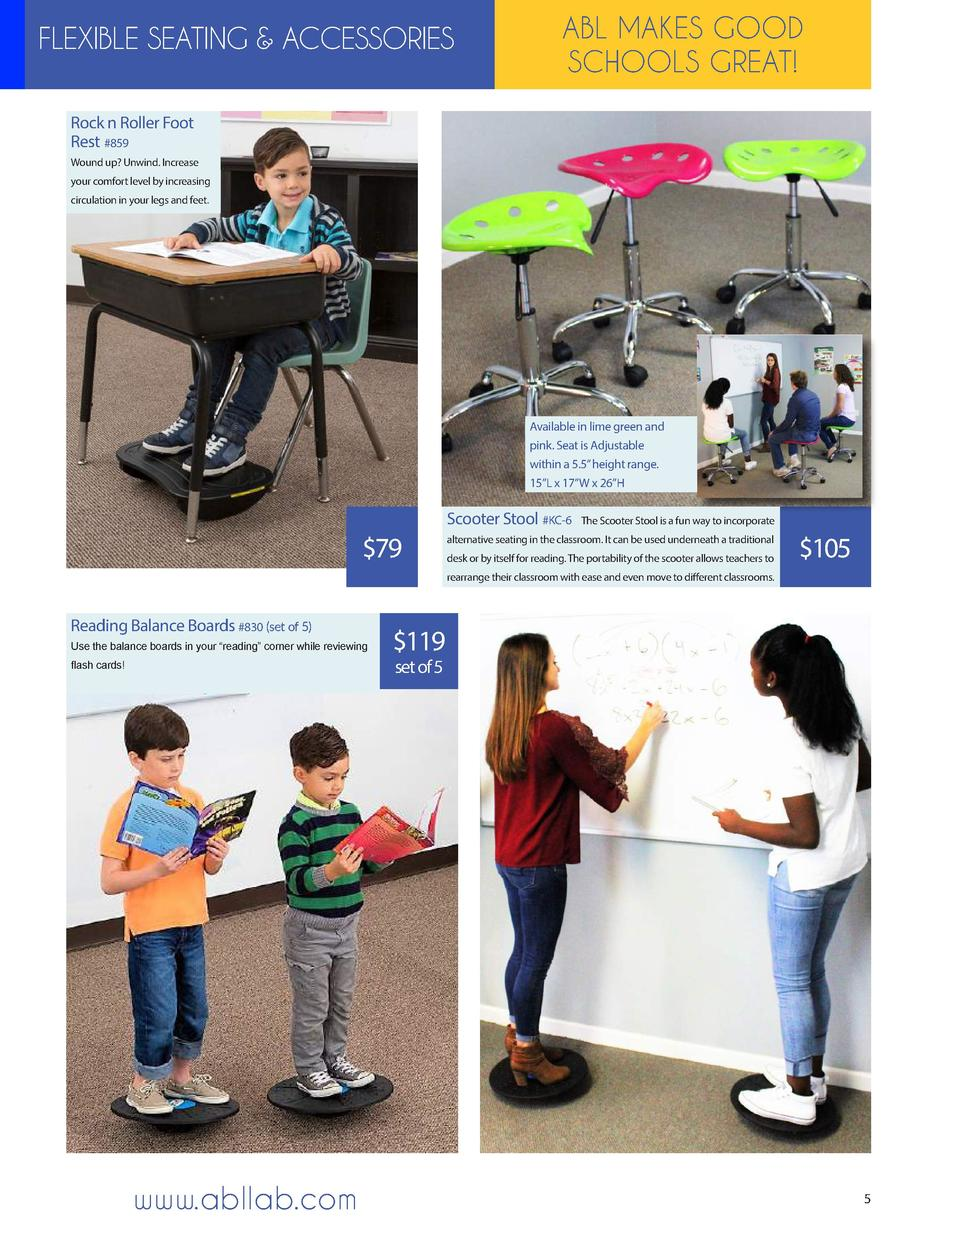 FLEXIBLE SEATING   ACCESSORIES  ABL MAKES GOOD SCHOOLS GREAT   Rock n Roller Foot Rest  859 Wound up  Unwind. Increase you...